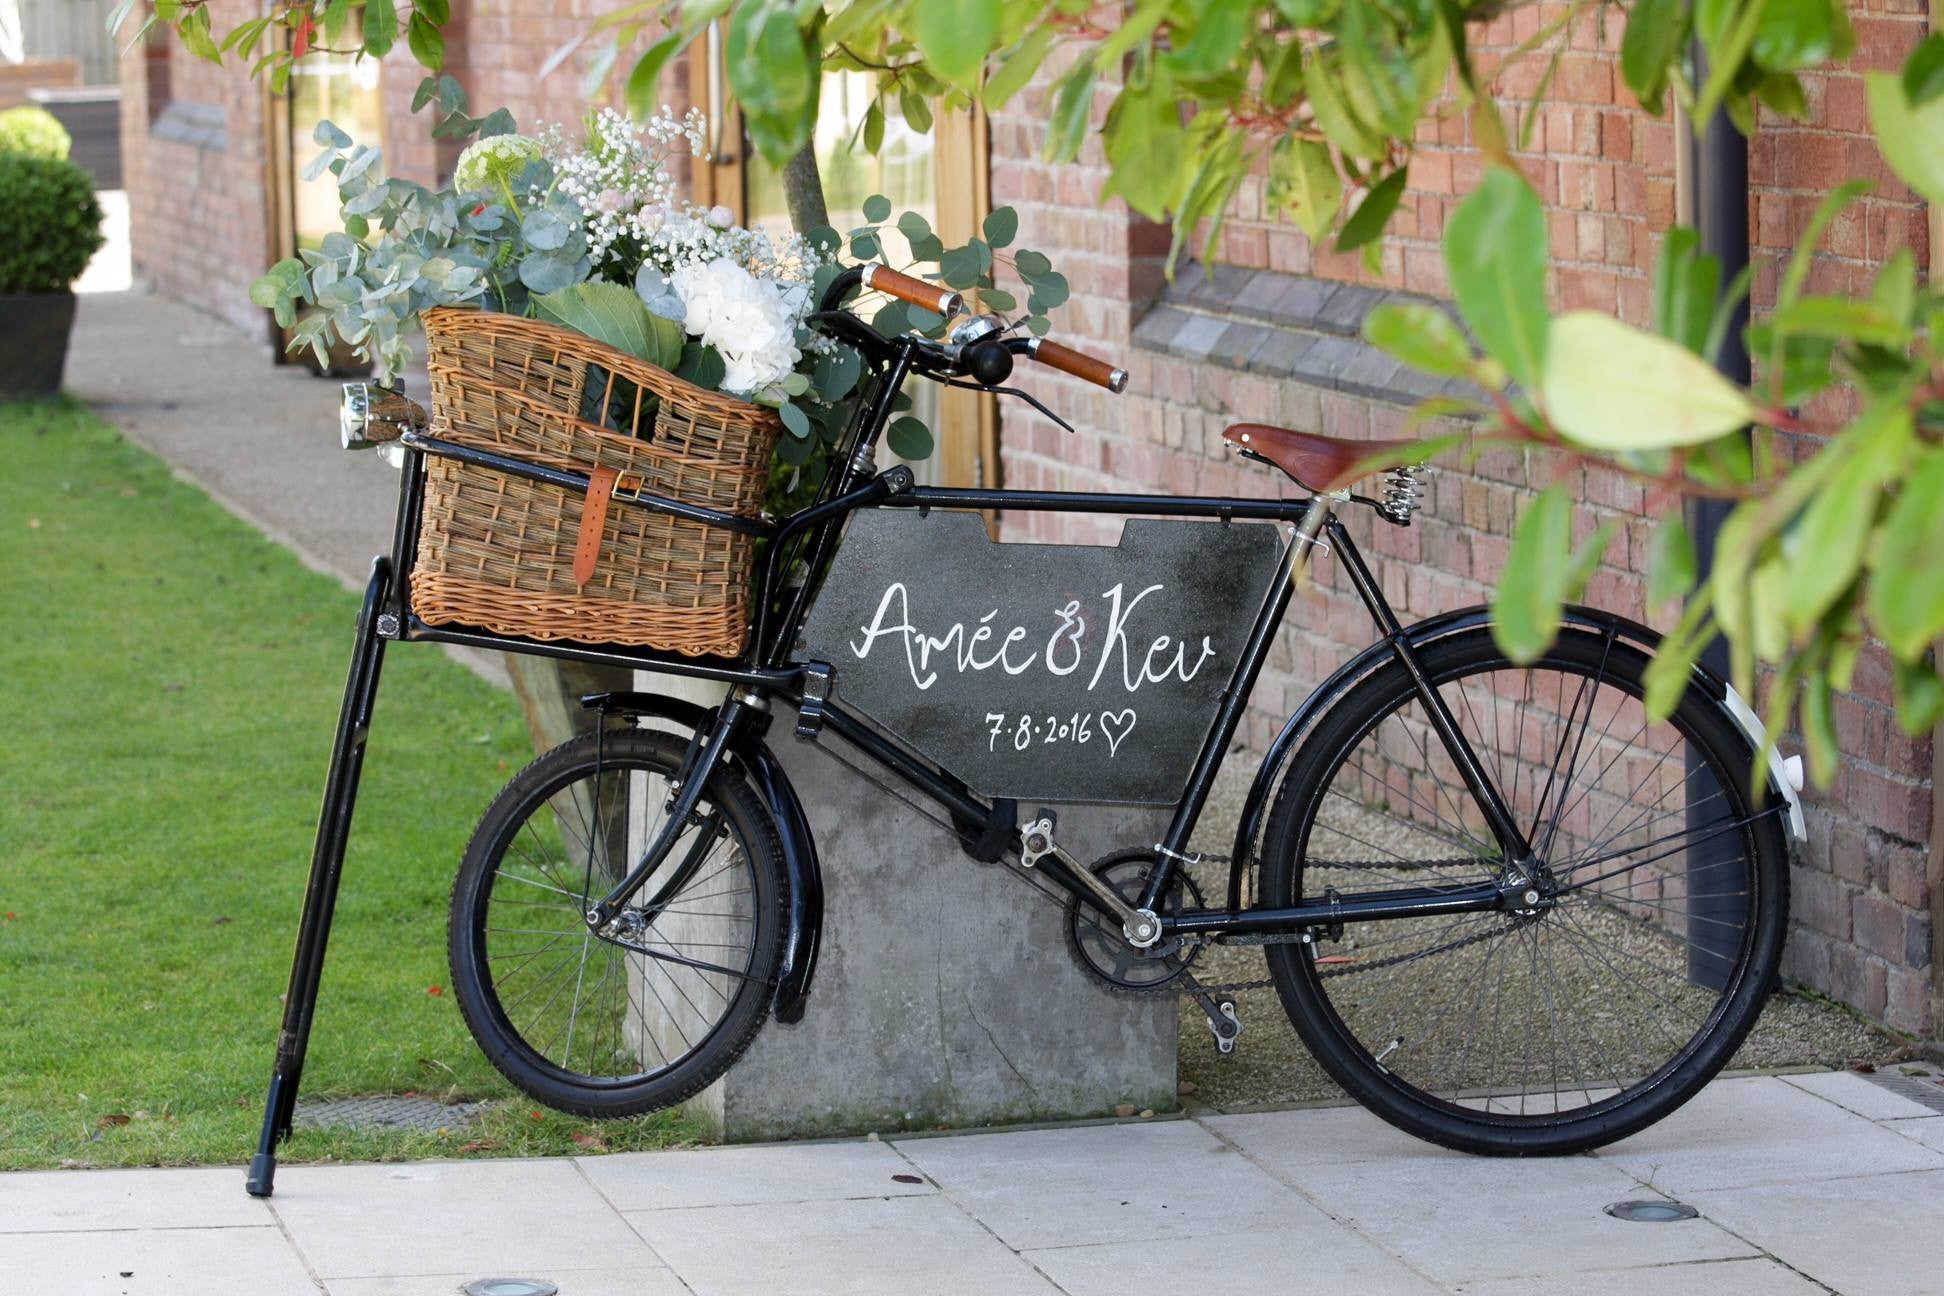 Vintage bike with wedding floral arrangement in shades of pink and cream in basket.